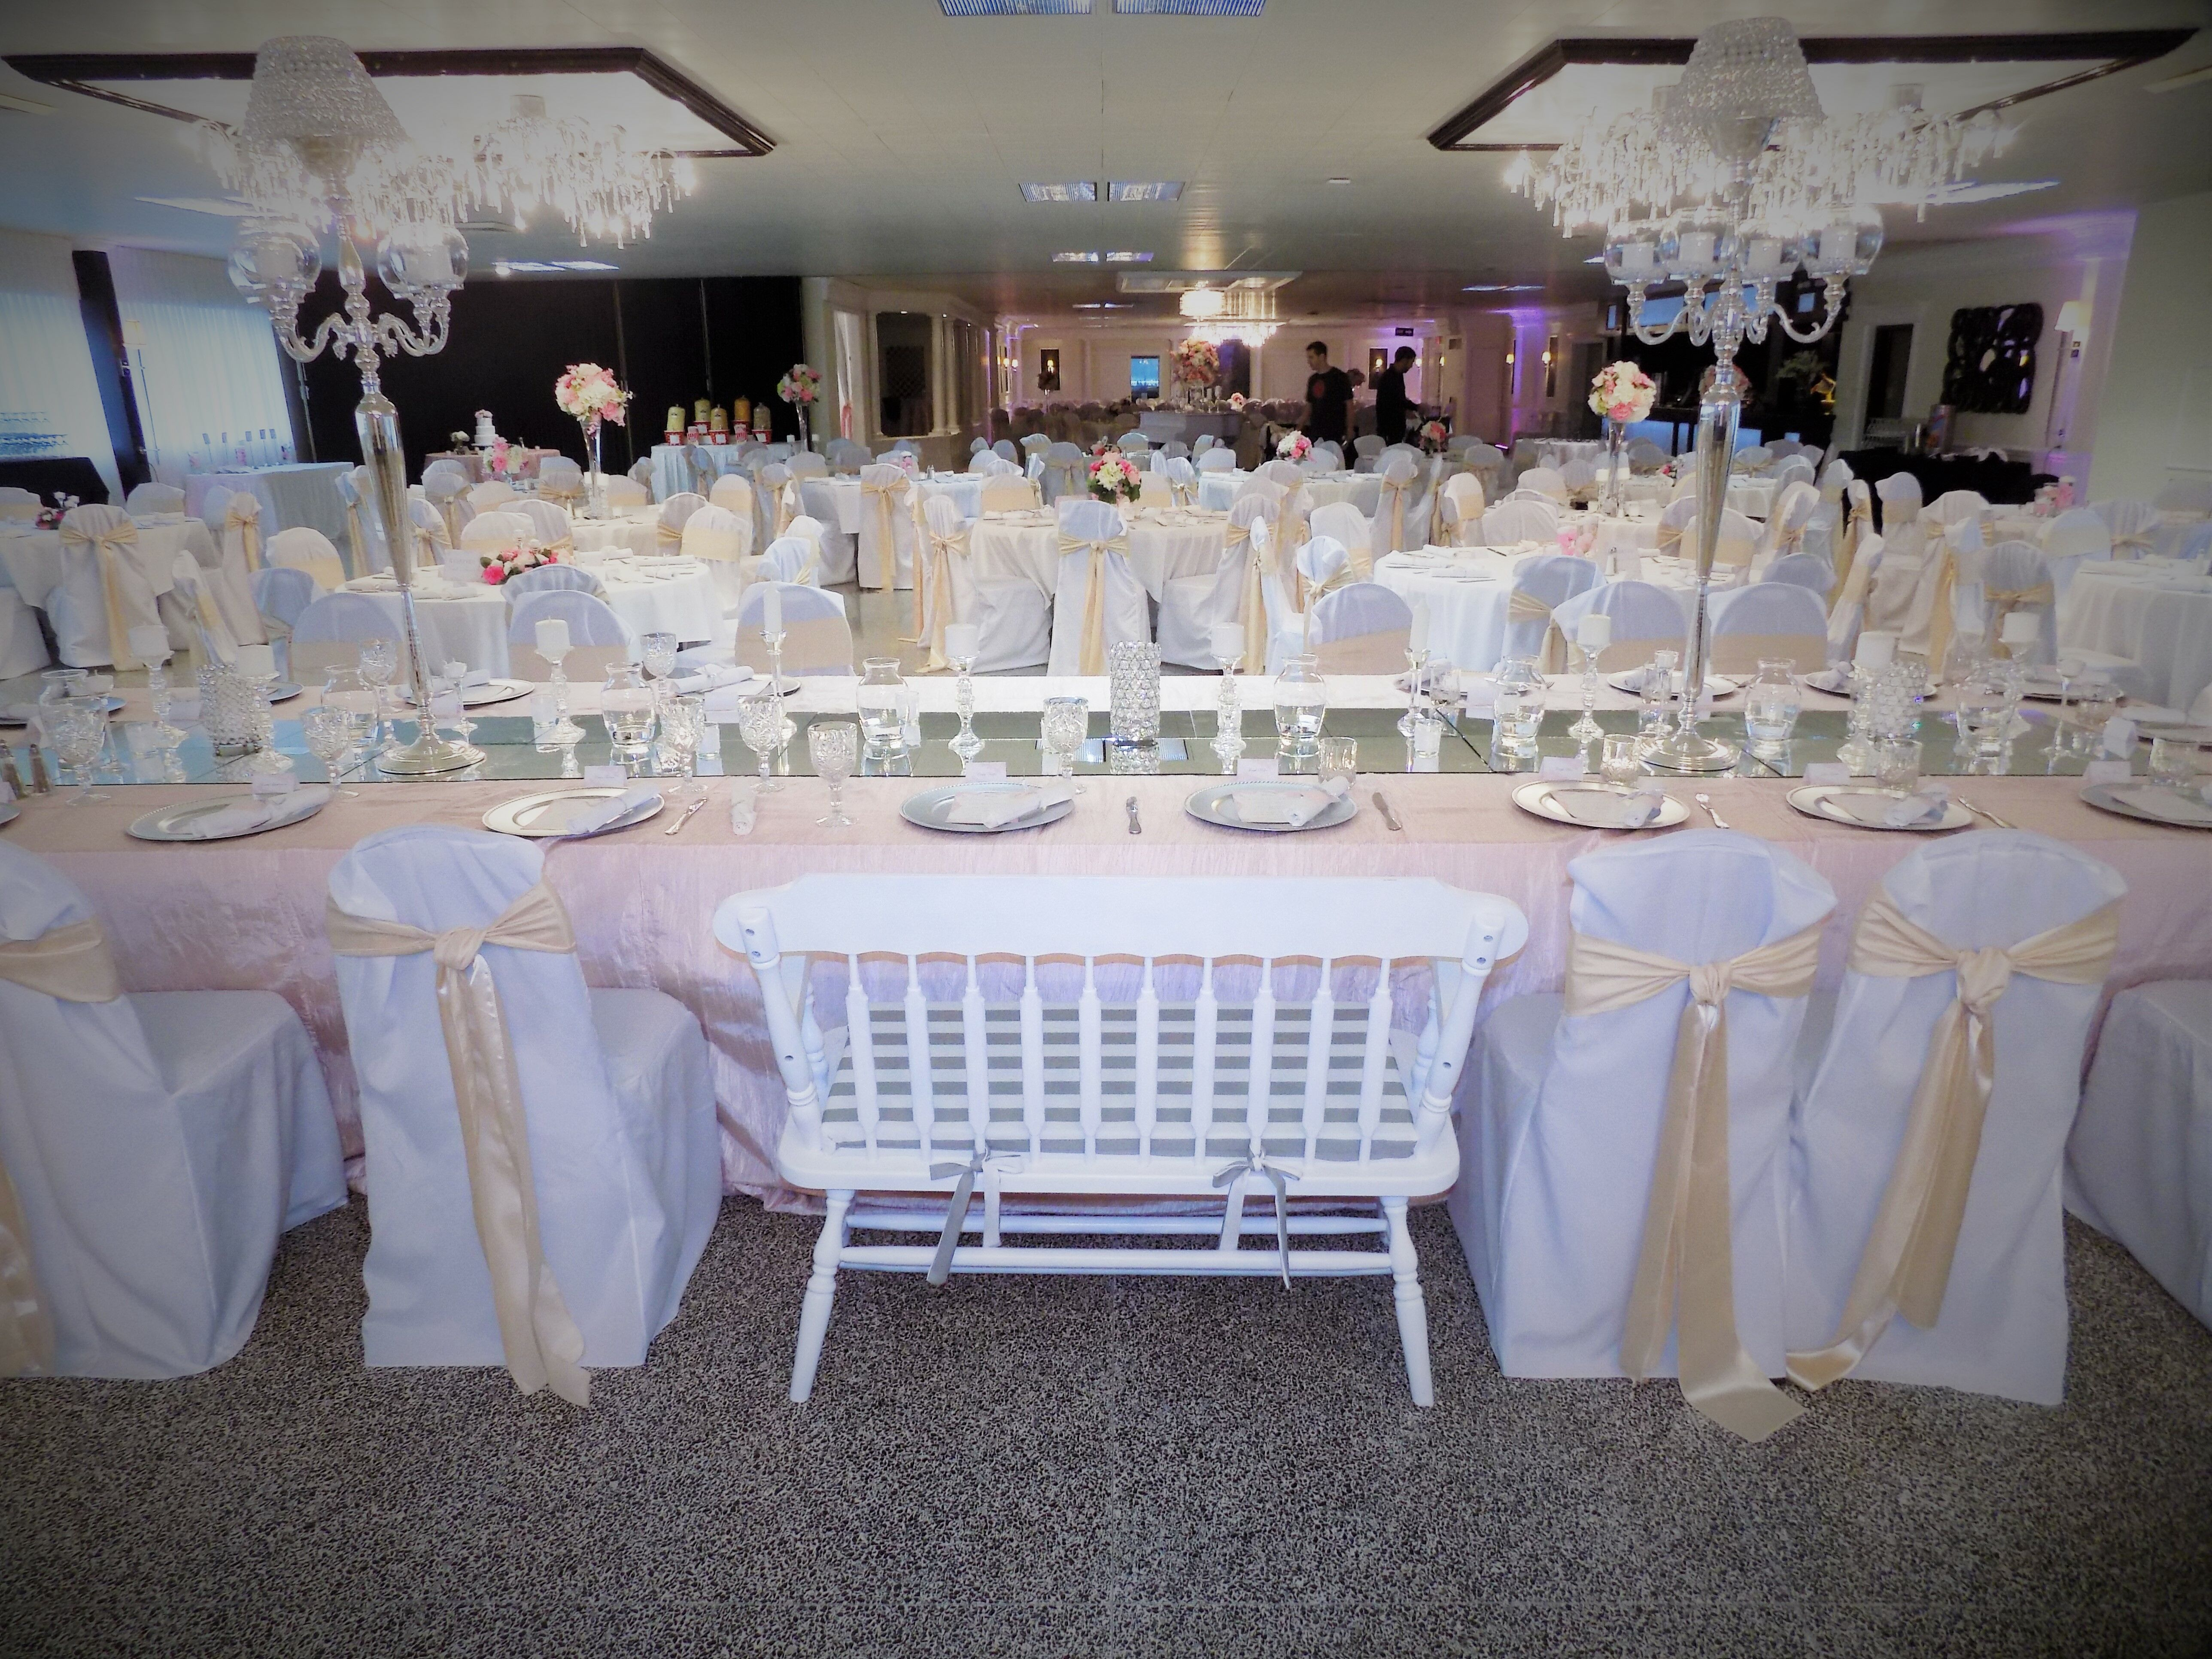 Wedding reception venues in louisville ky the knot woodhaven country club junglespirit Gallery